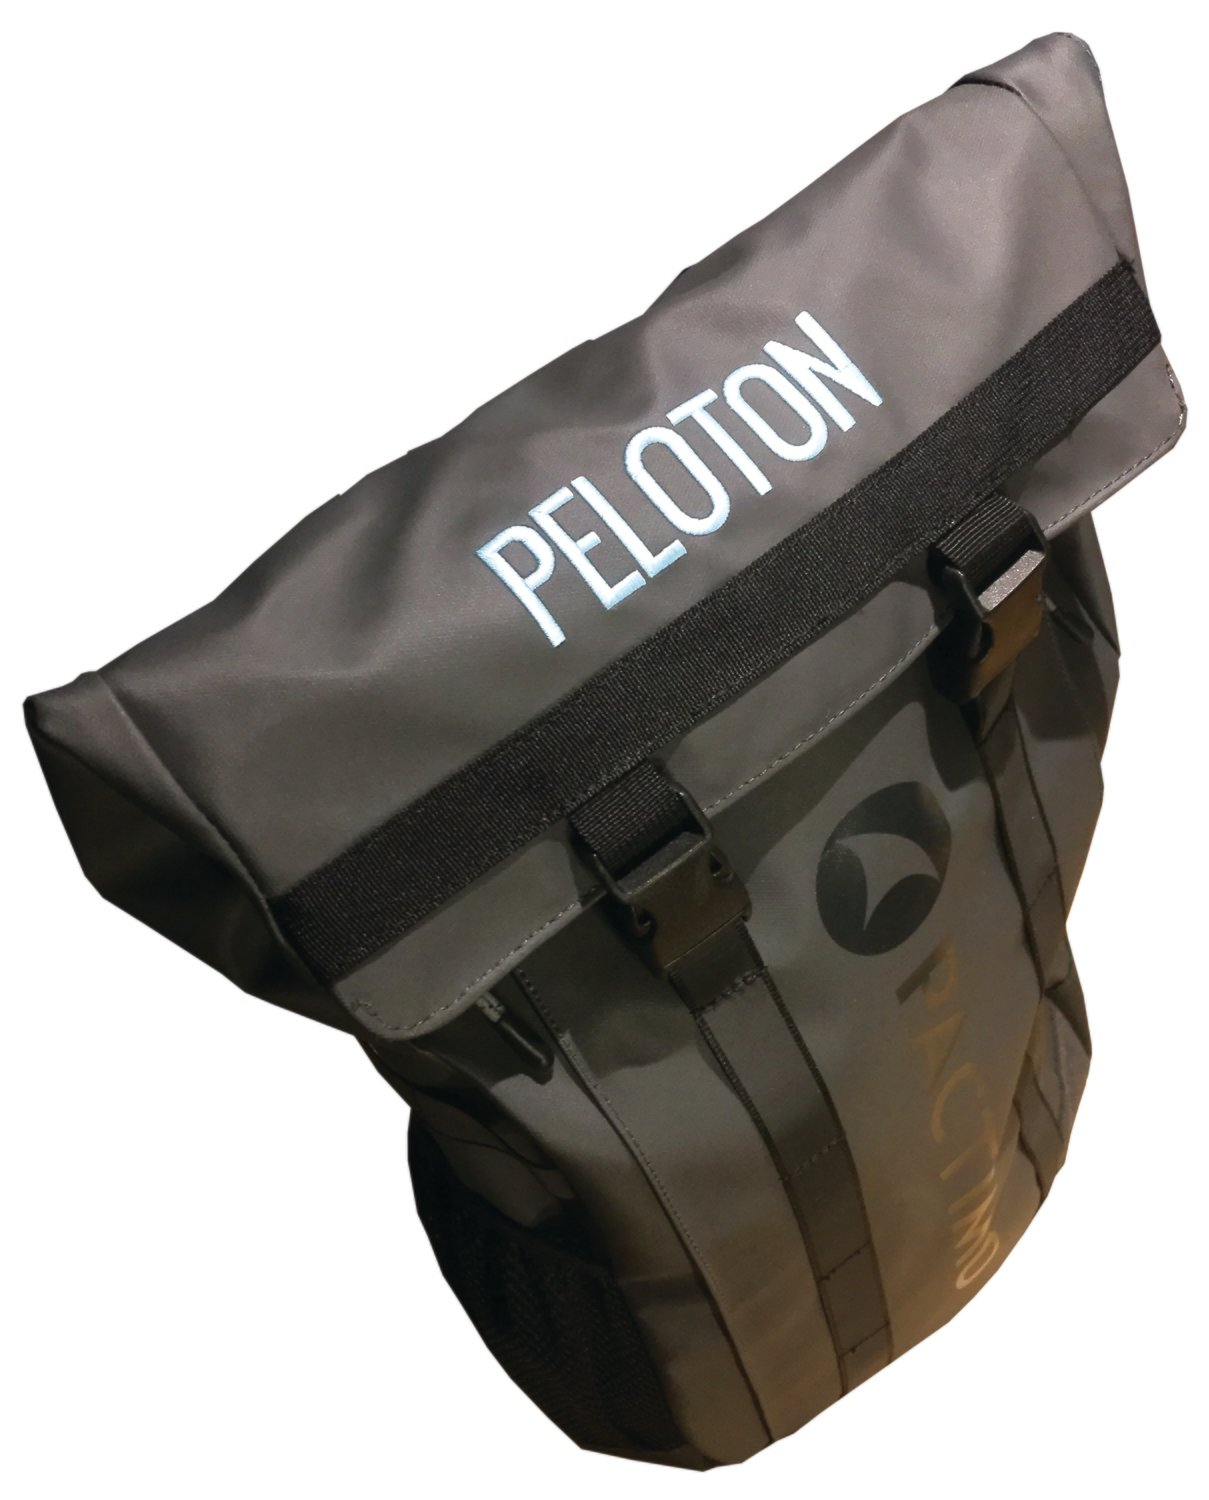 PELOTON X Pactimo Dispatch backpack